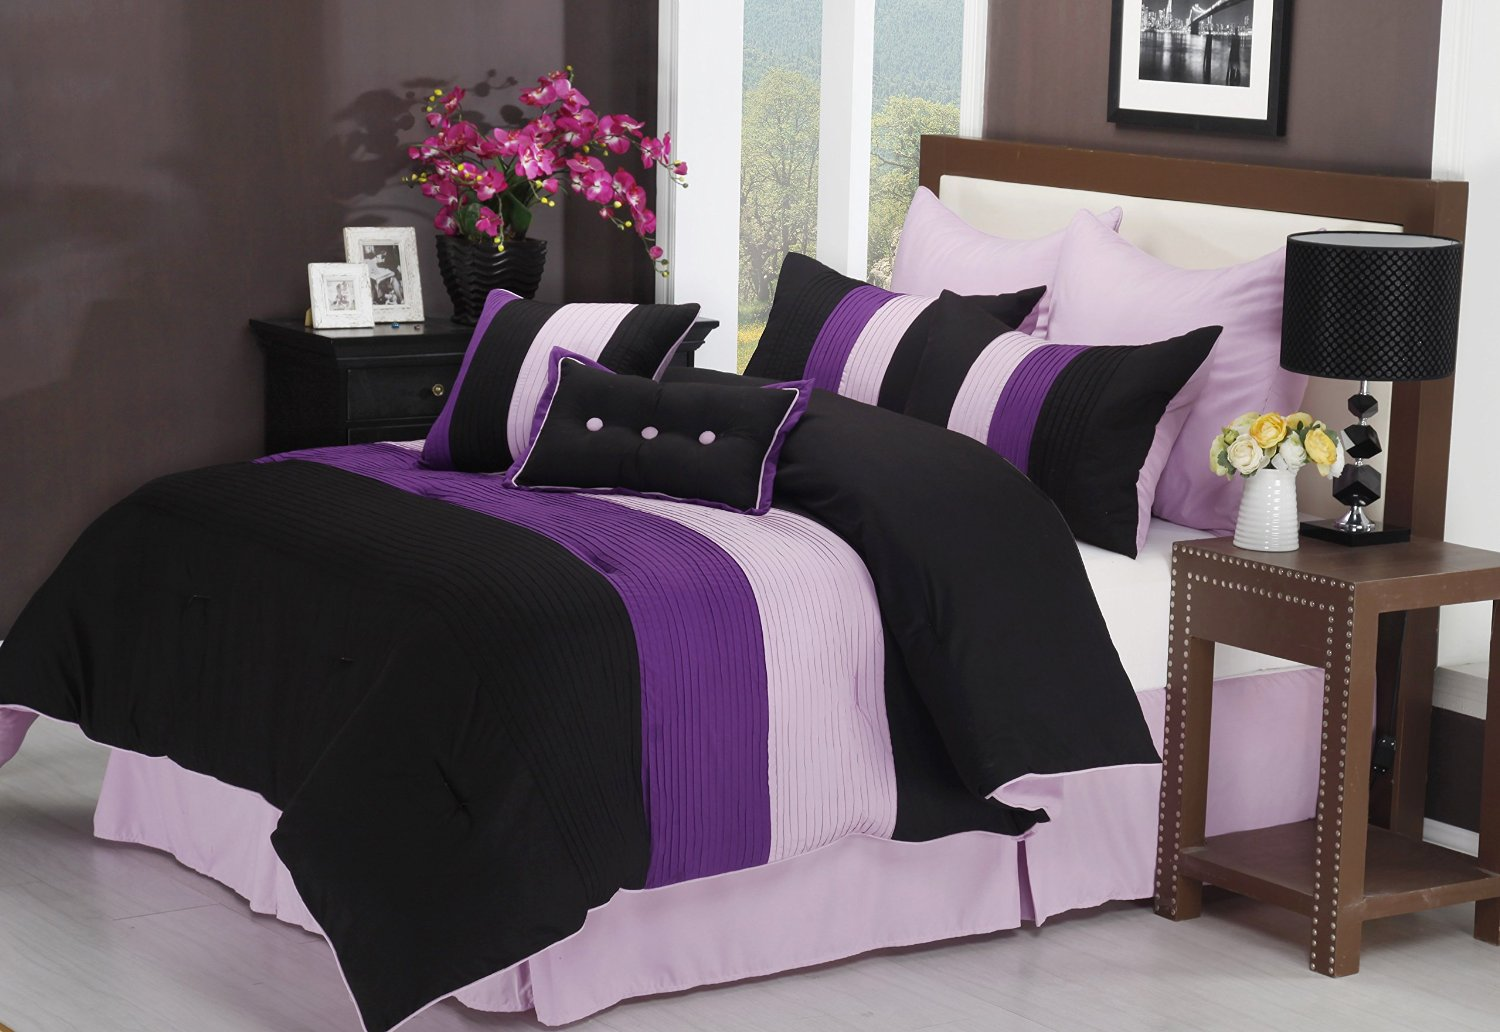 Bedroom Decorating Ideas Plum